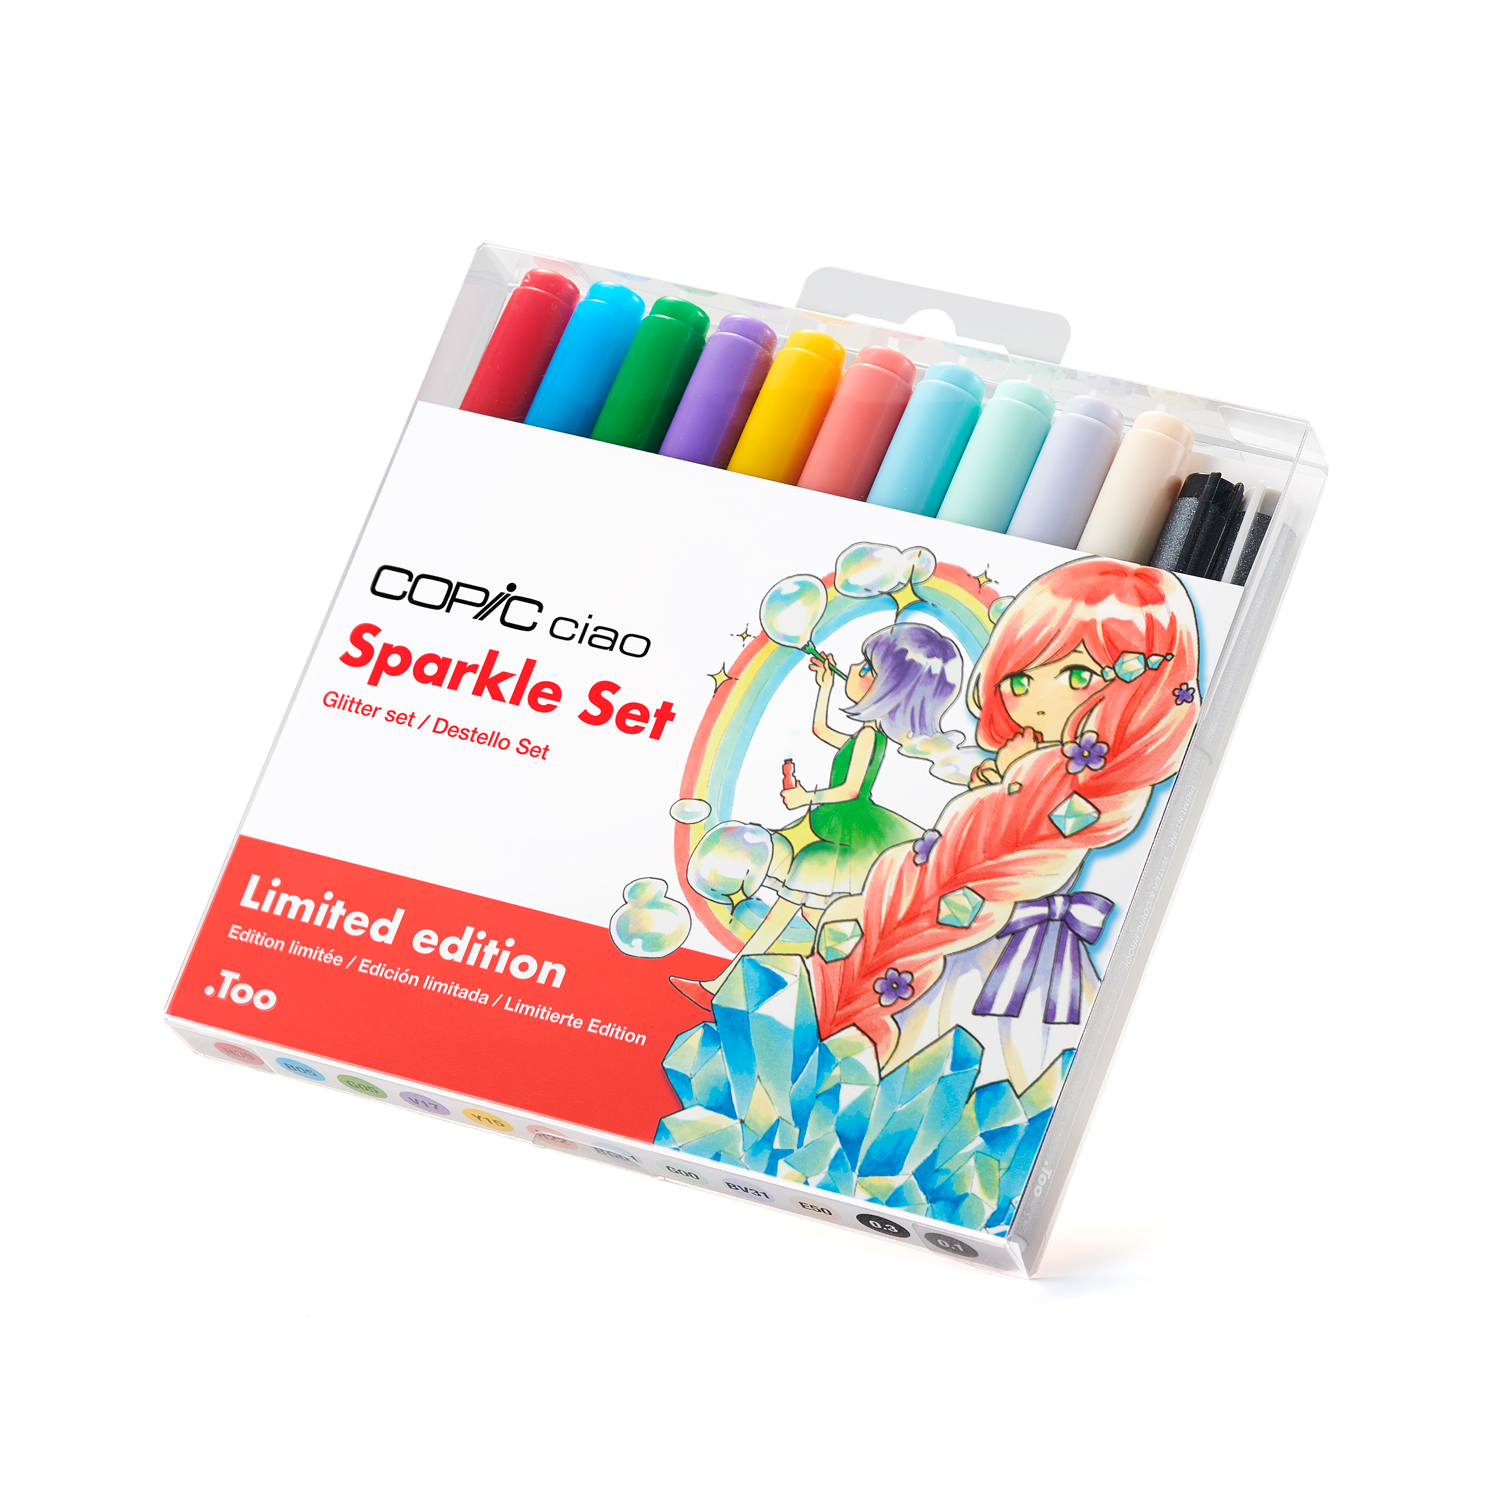 Copic Ciao Marker 4pc Doodle Kit, Sparkle Set, Includes a Learning Booklet